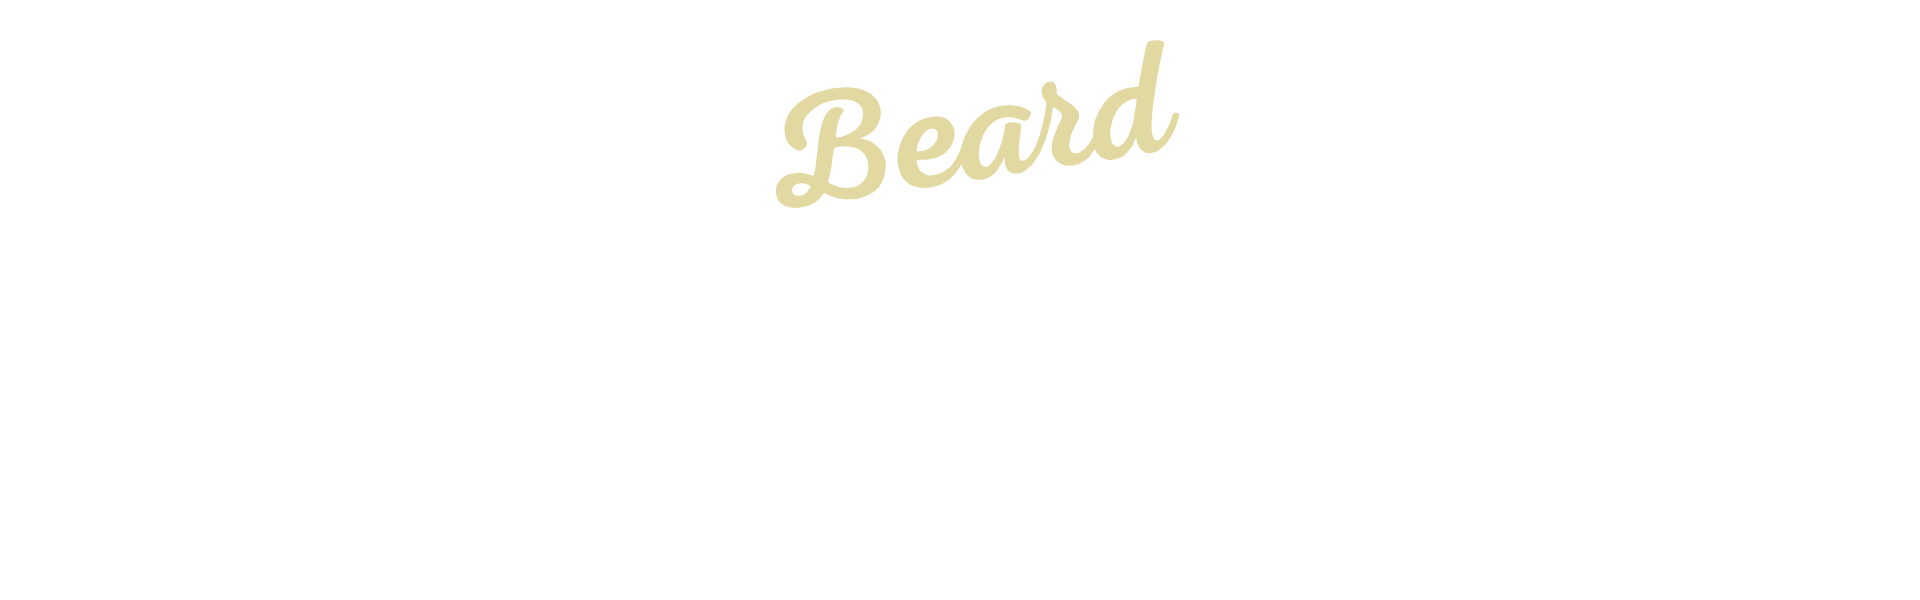 Beard Home Slider